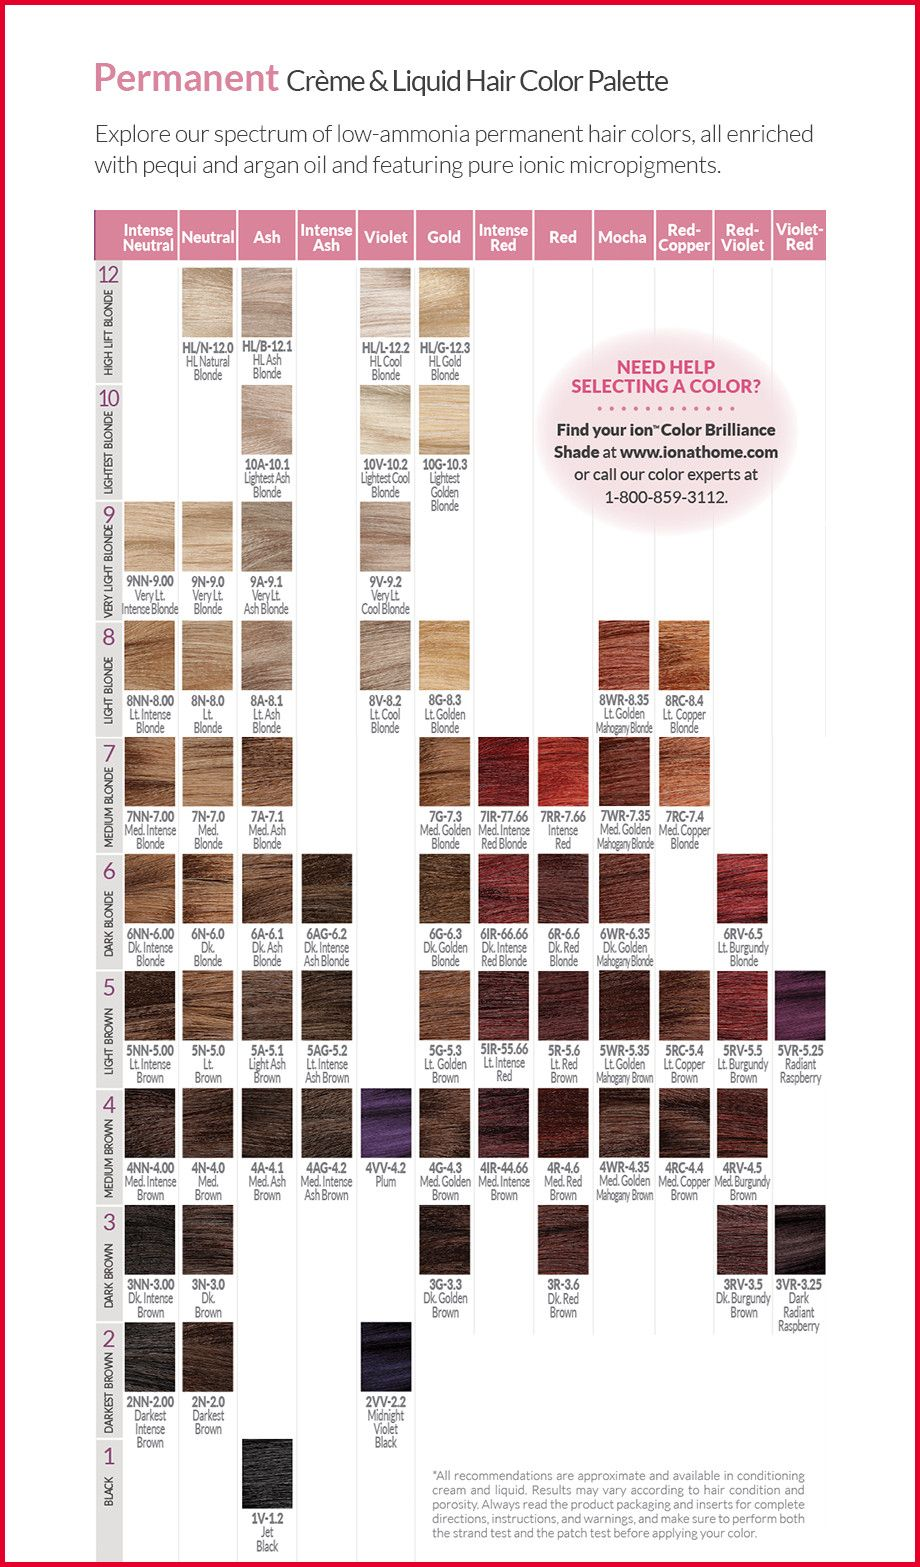 Ion Color Brilliance Brights Color Chart Ion Color Brilliance Brights Ion Color Brilliance Hair Color Swatches